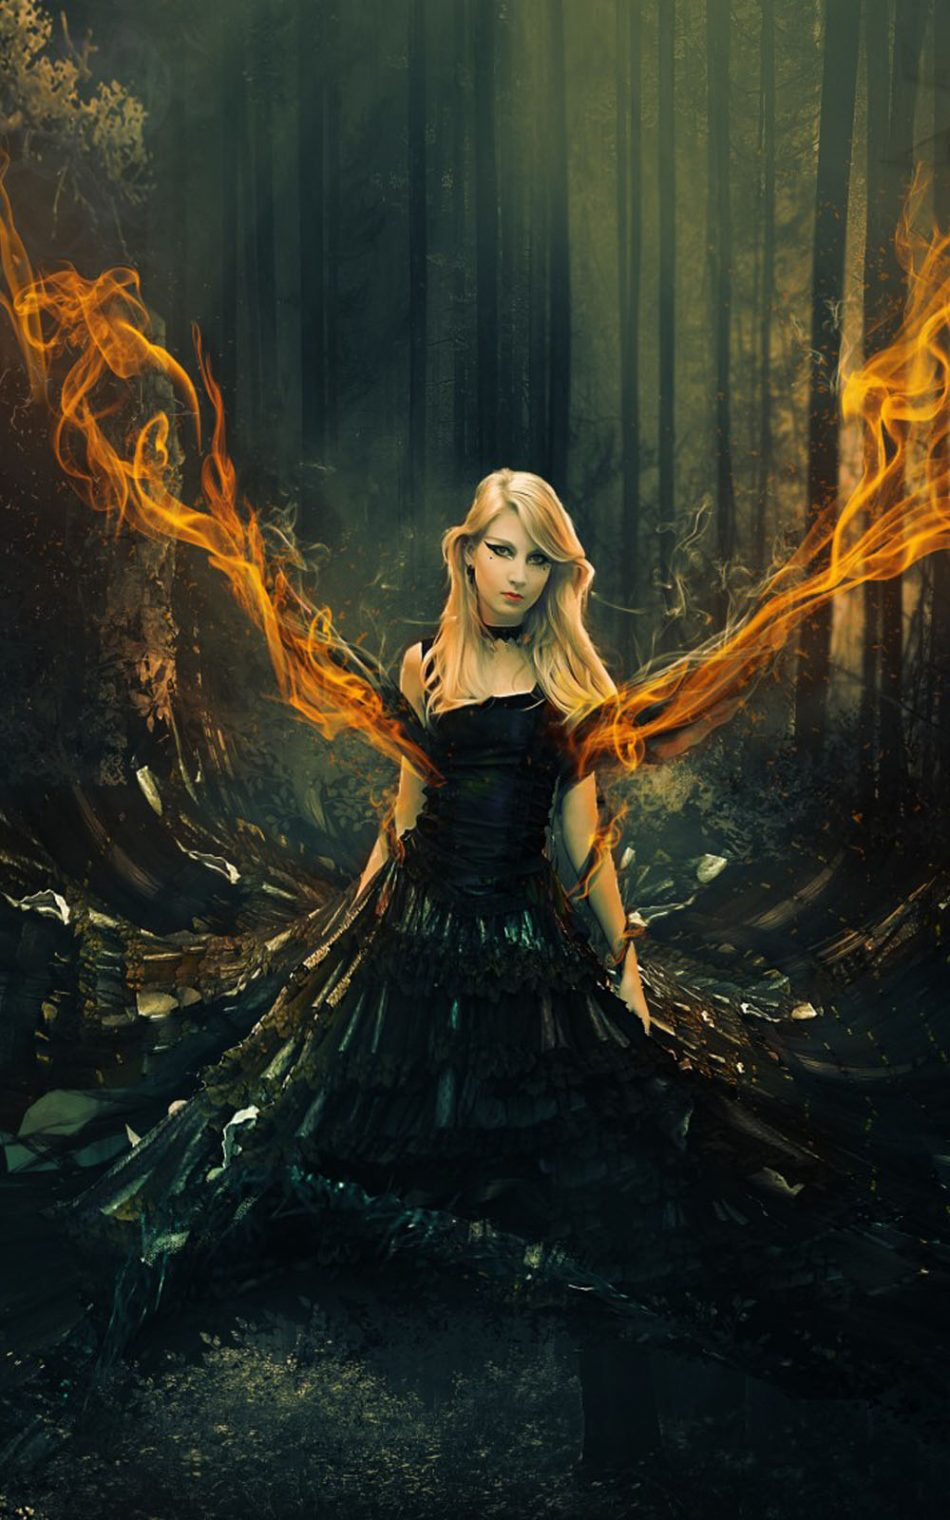 Fantasy Girl Flame Forest Surreal Hd Mobile Wallpaper - Fantasy Wallpaper 4k Phone - HD Wallpaper